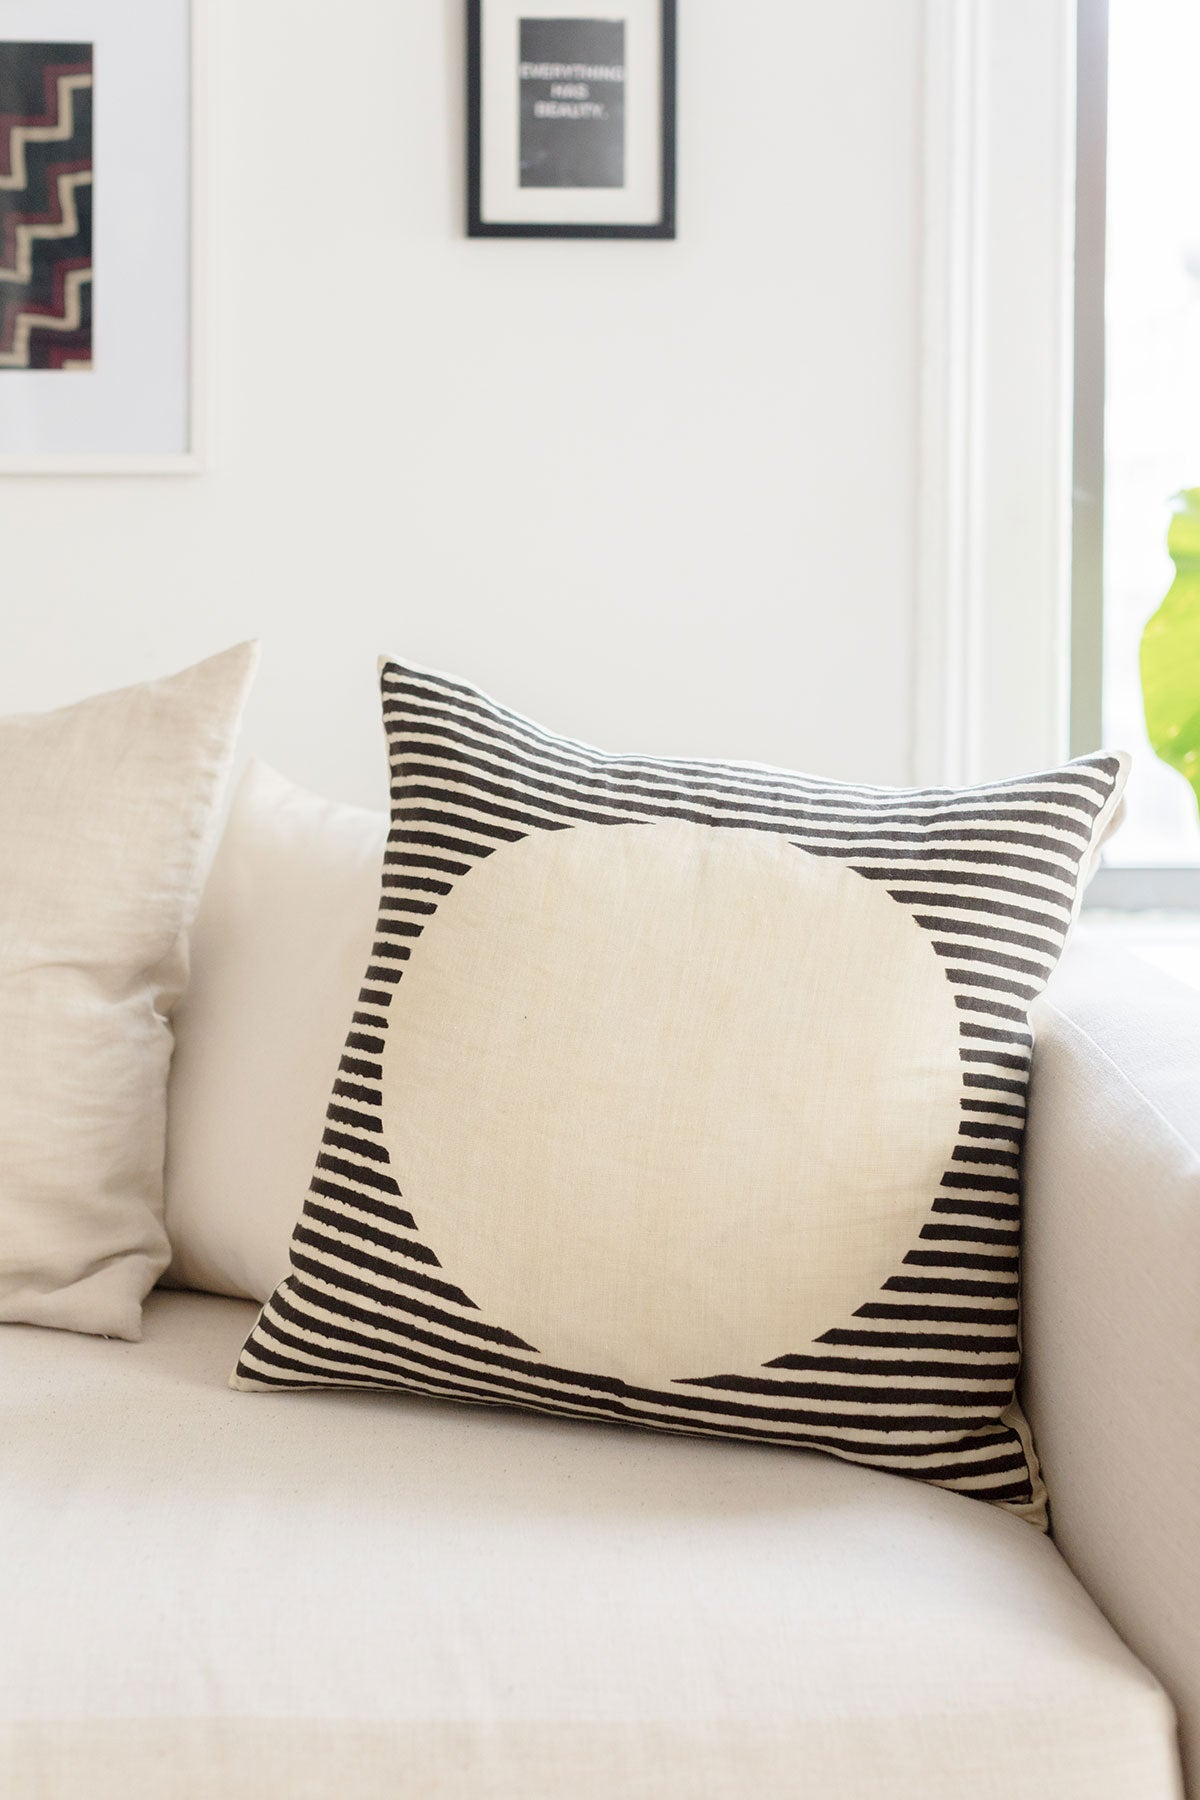 Black and off white geometric pillow by SUNDAY/MONDAY. Hand block printed with natural dye on Indian linen. Adds a bold neutral statement to any space. Inspired by Sol Le Witt.